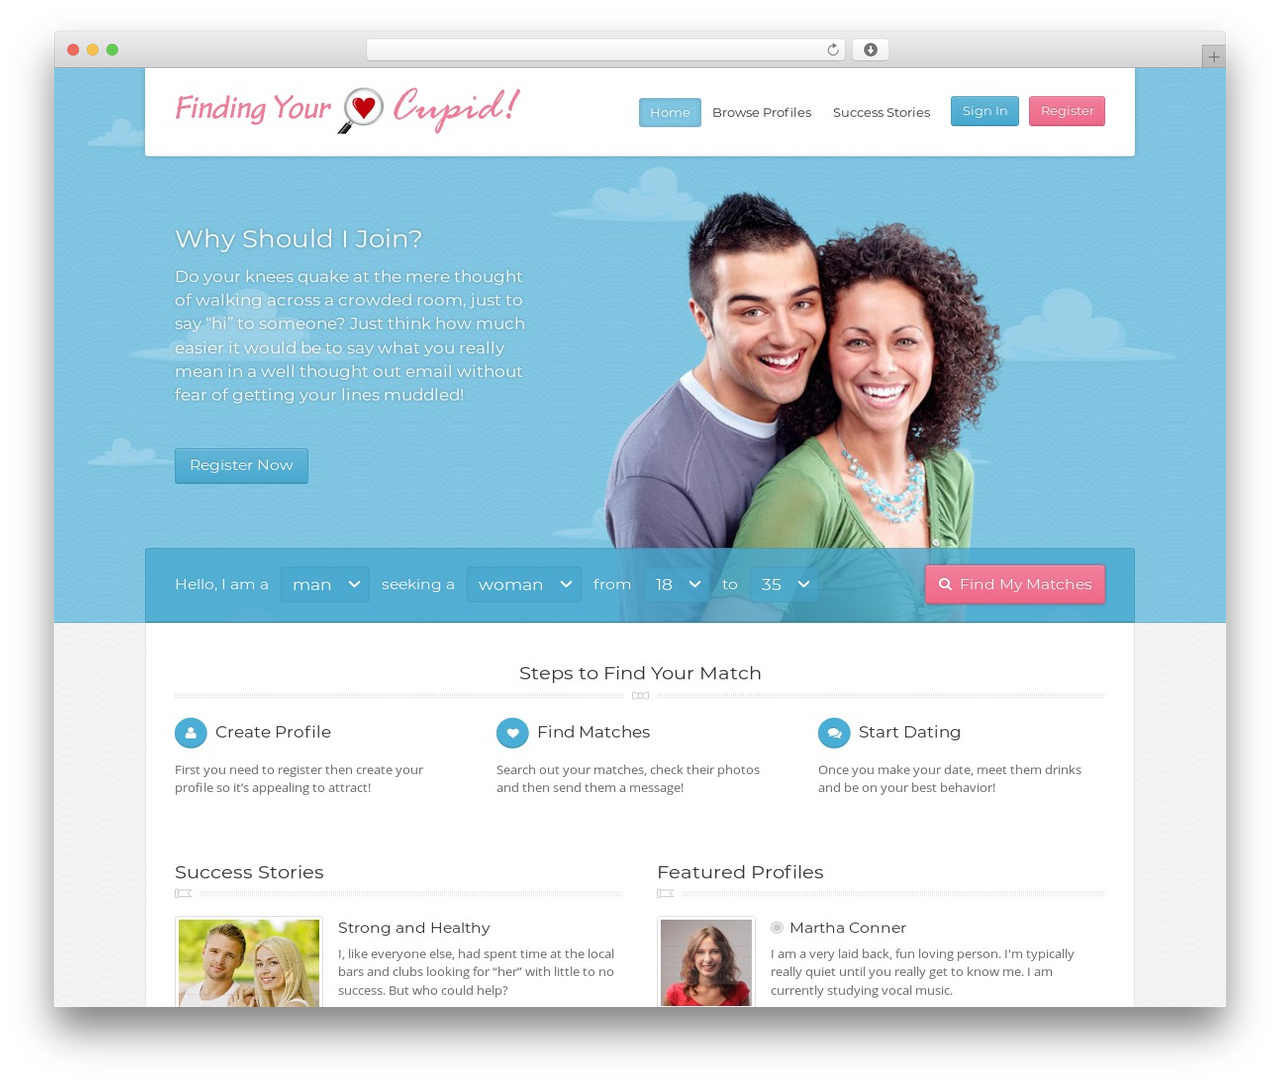 Your cupid matches website